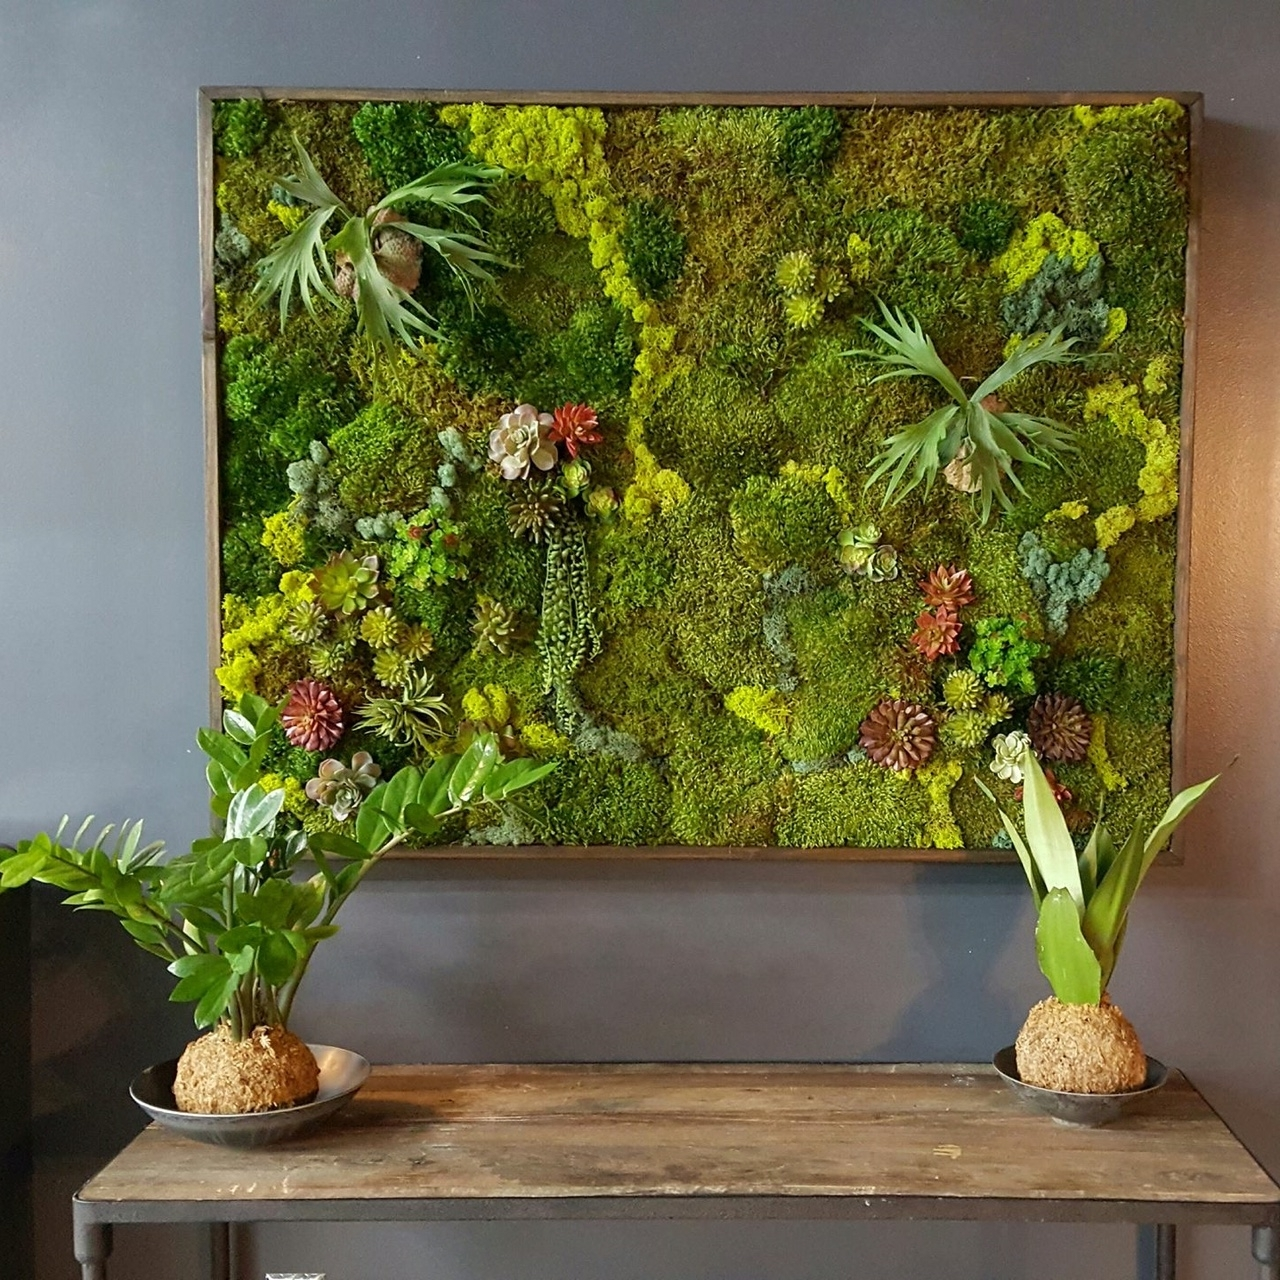 Moss Wall Art For 2017 Your Questions About Moss Walls Answered (View 12 of 15)